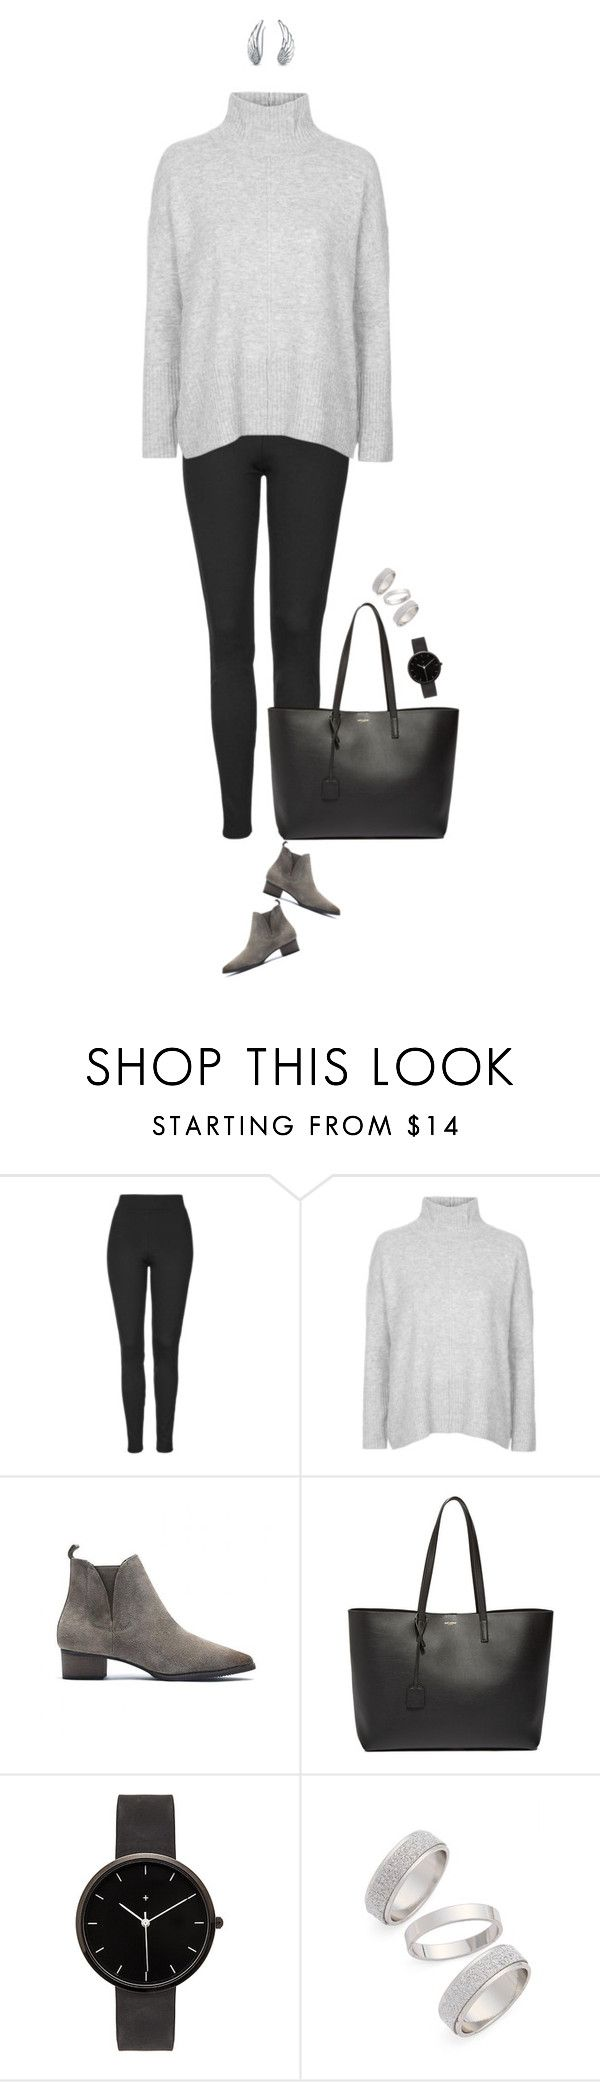 """""""Sunday brunch outfit !"""" by azzra ❤ liked on Polyvore featuring moda, Topshop, Yves Saint Laurent, I Love Ugly, Bling Jewelry, women's clothing, women, female, woman e misses"""